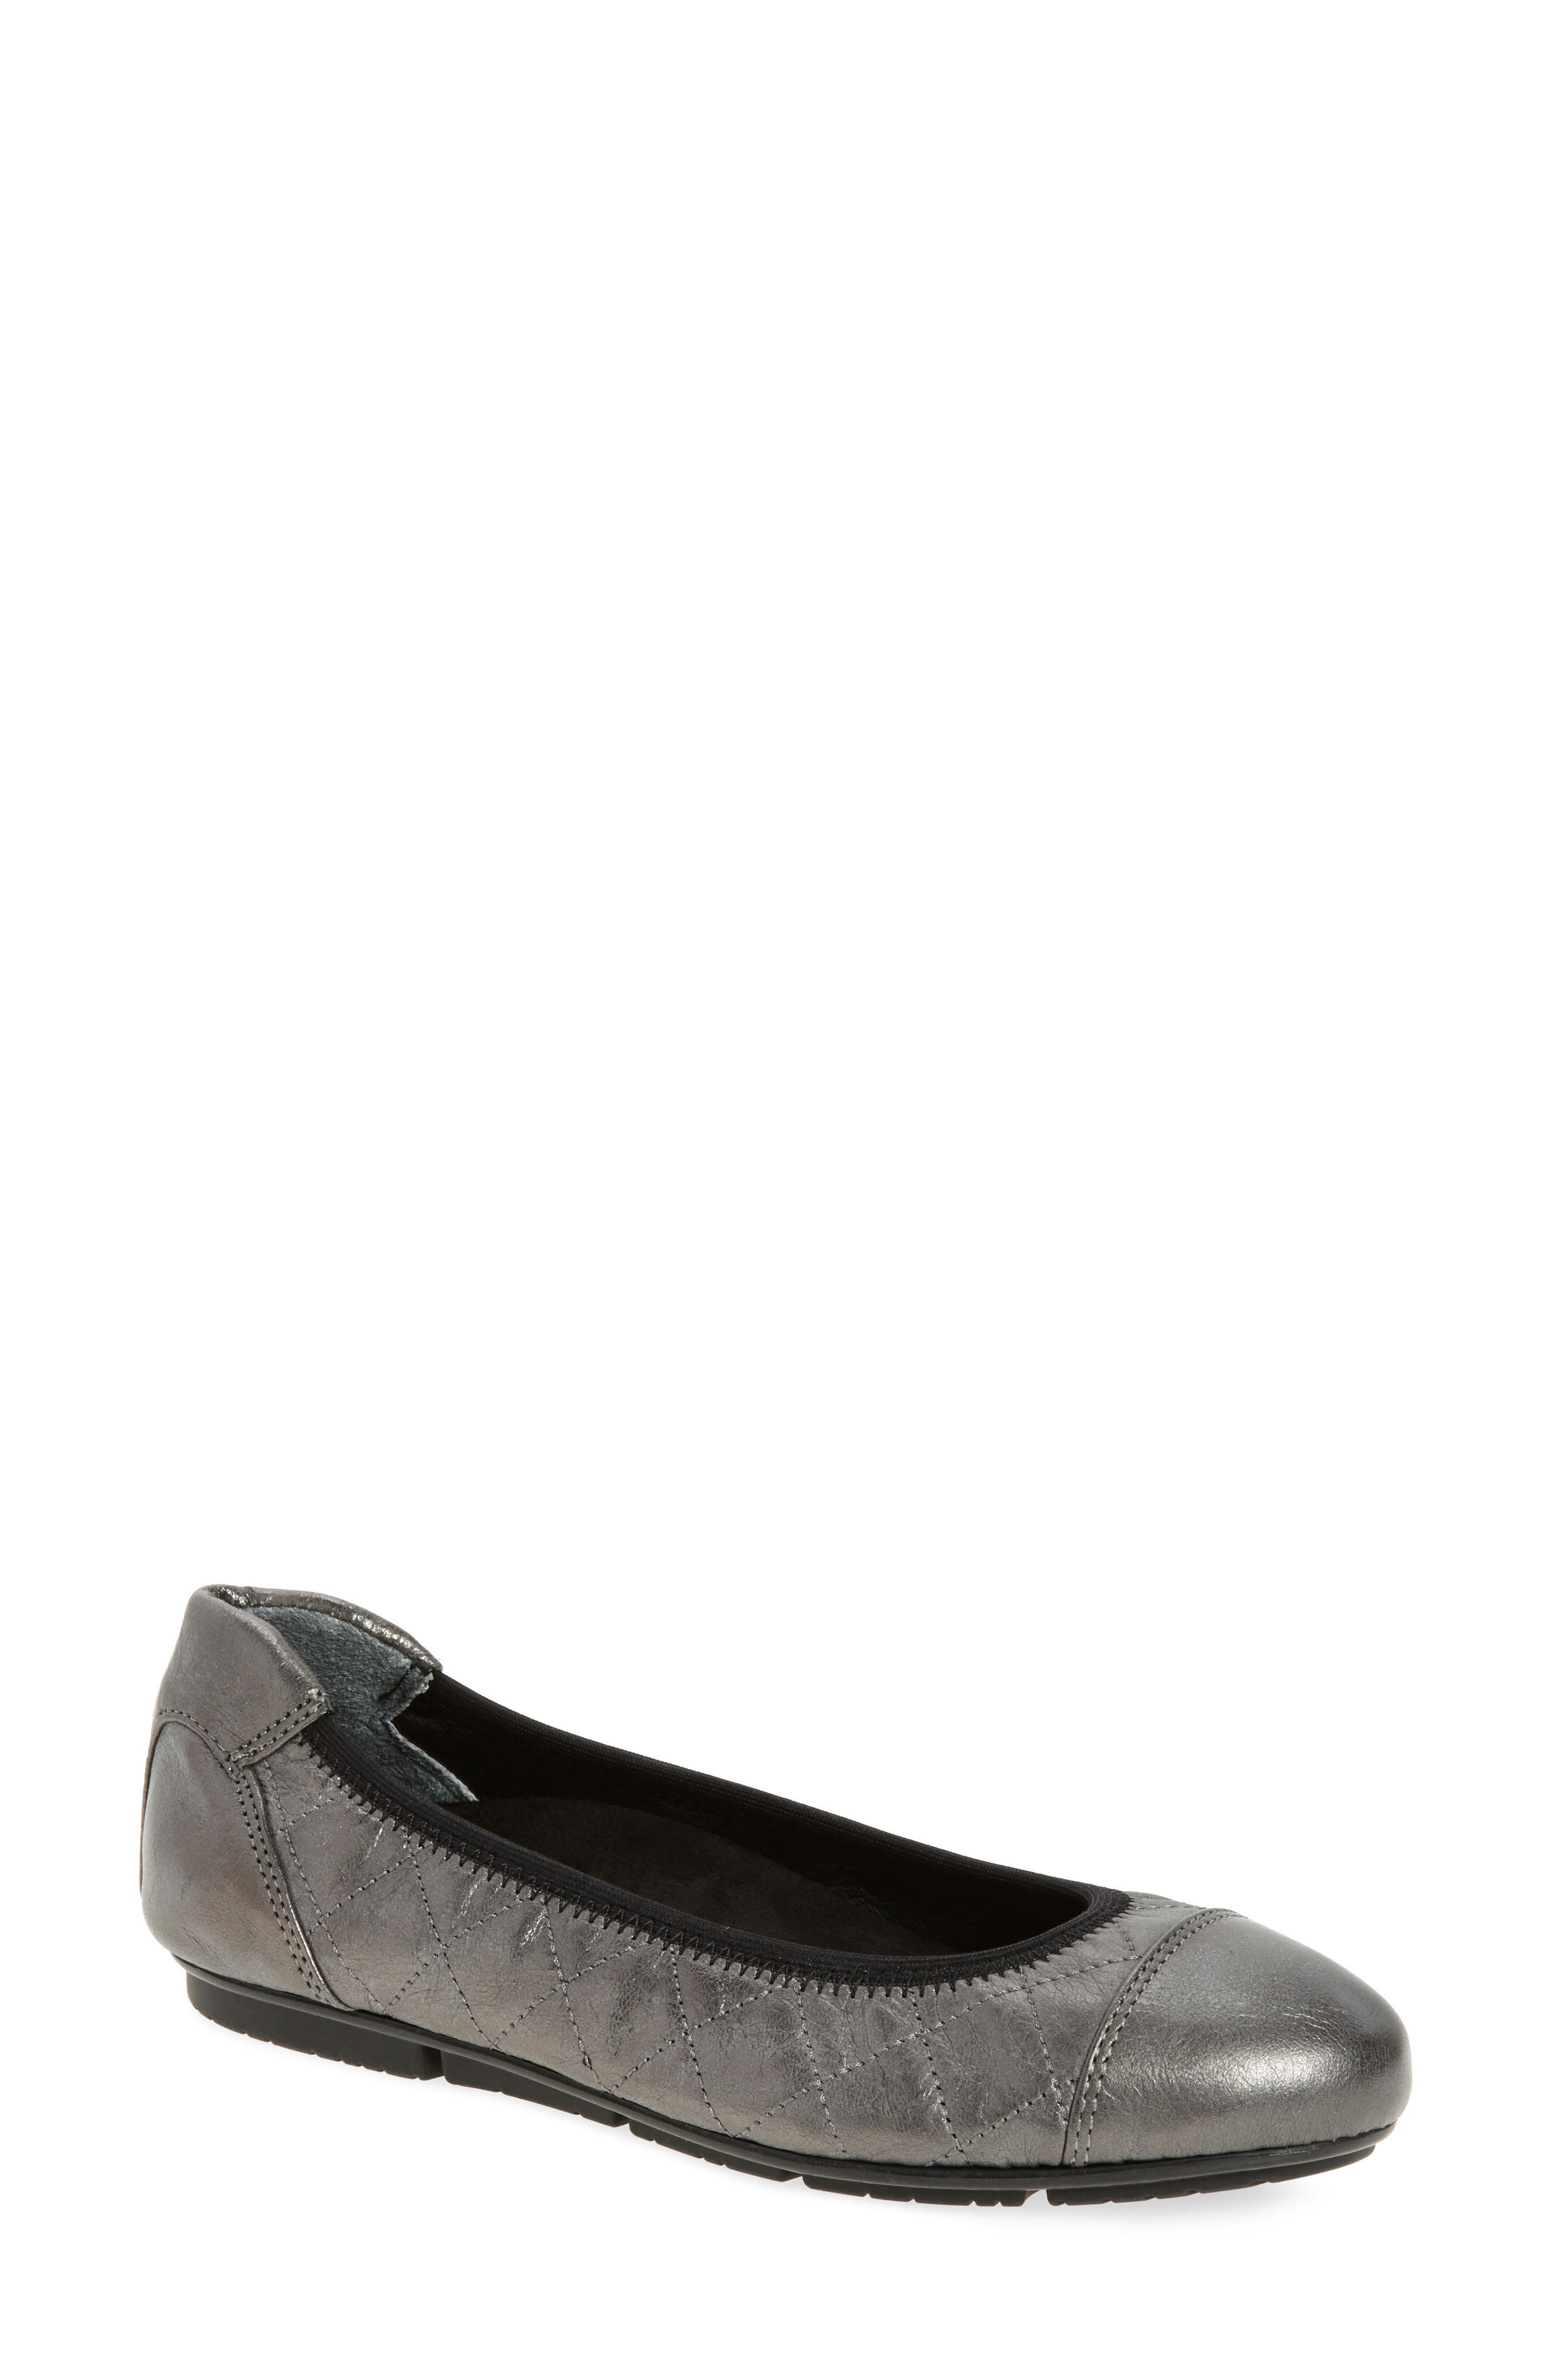 Main Image - Vionic Ava Quilted Ballet Flat (Women)